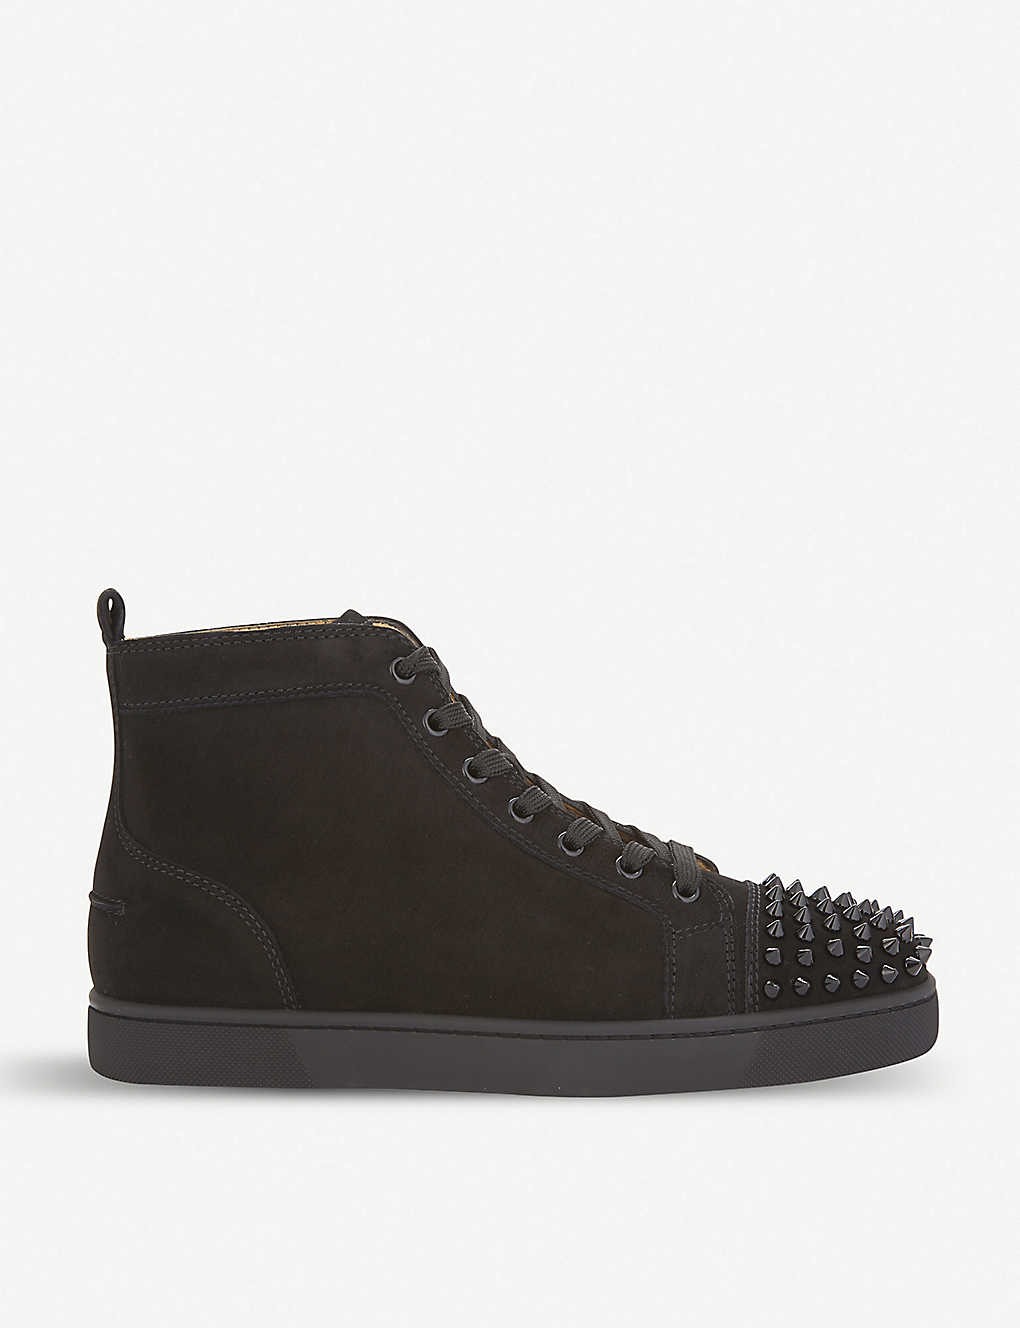 5d5a75c5ca5 CHRISTIAN LOUBOUTIN - Louis spikes flat suede